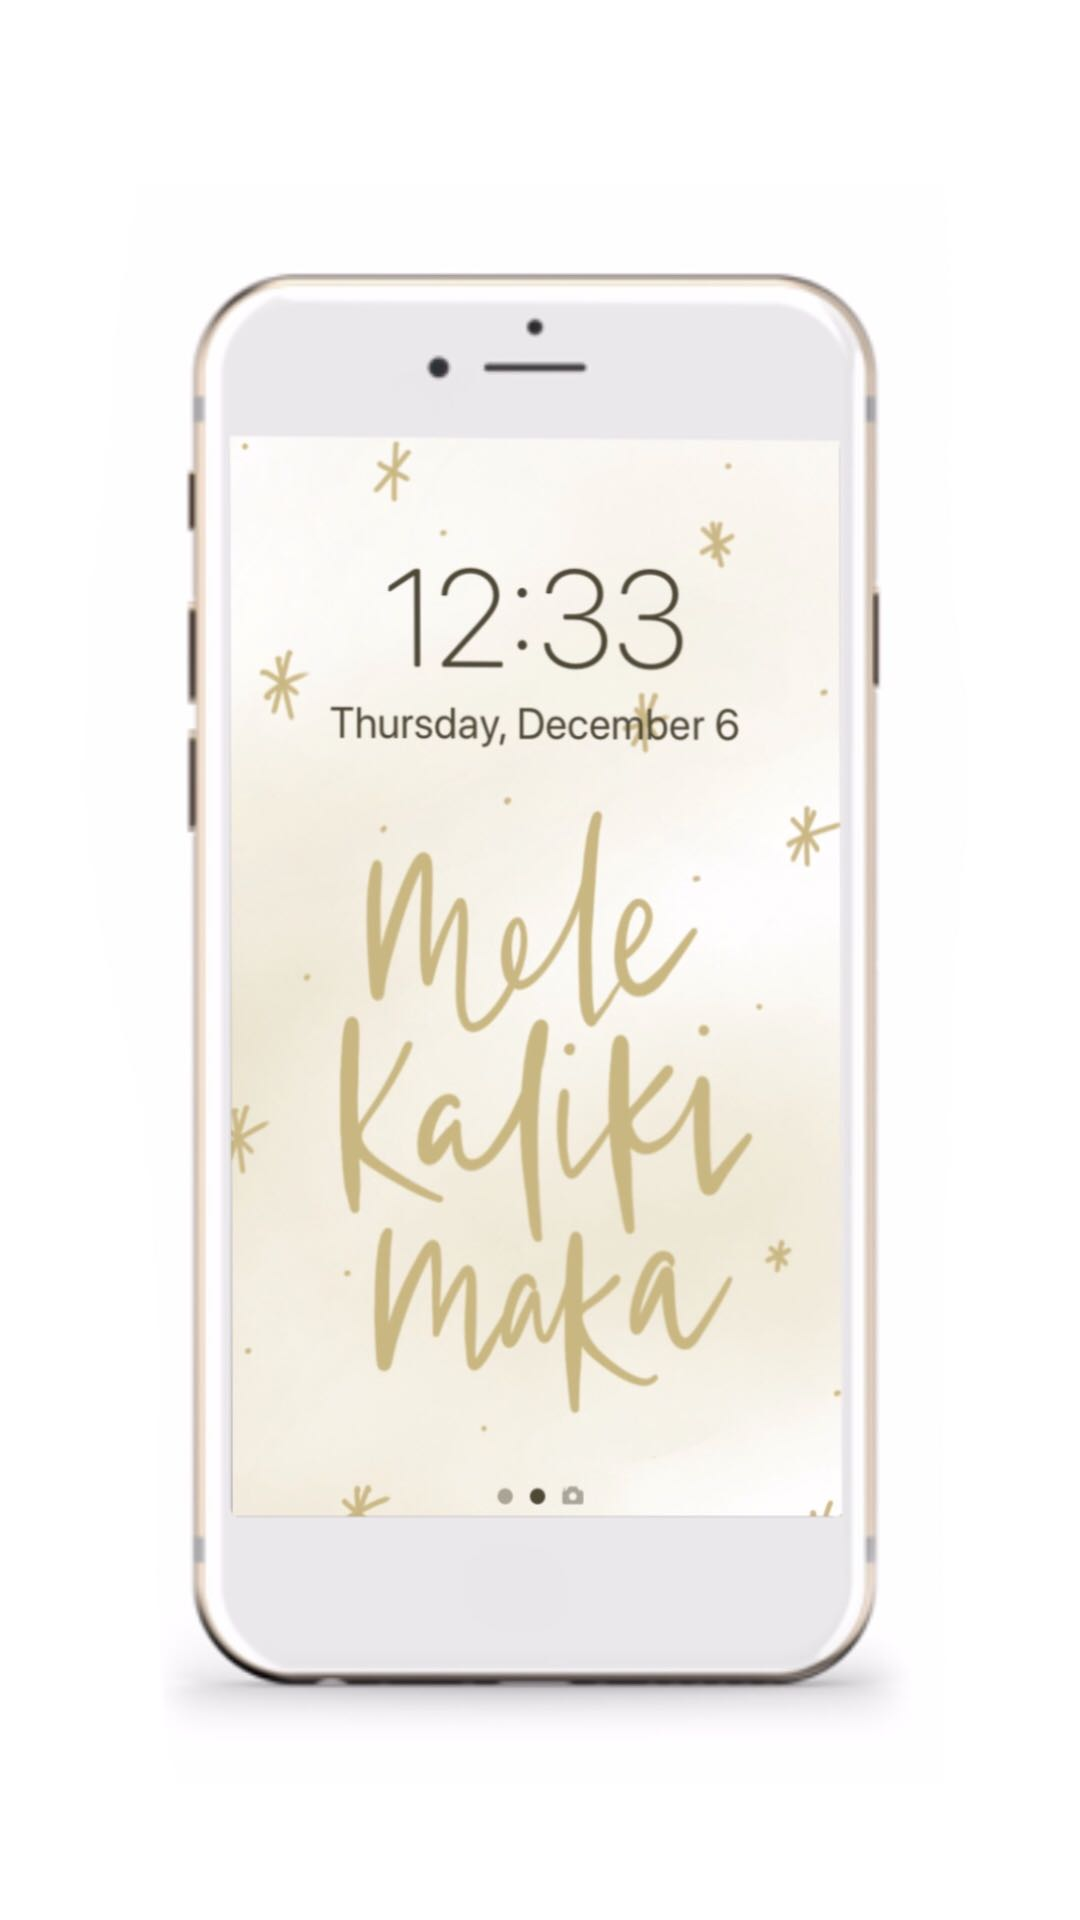 Carry the aloha spirit of the season with you. Download this screensaver now.